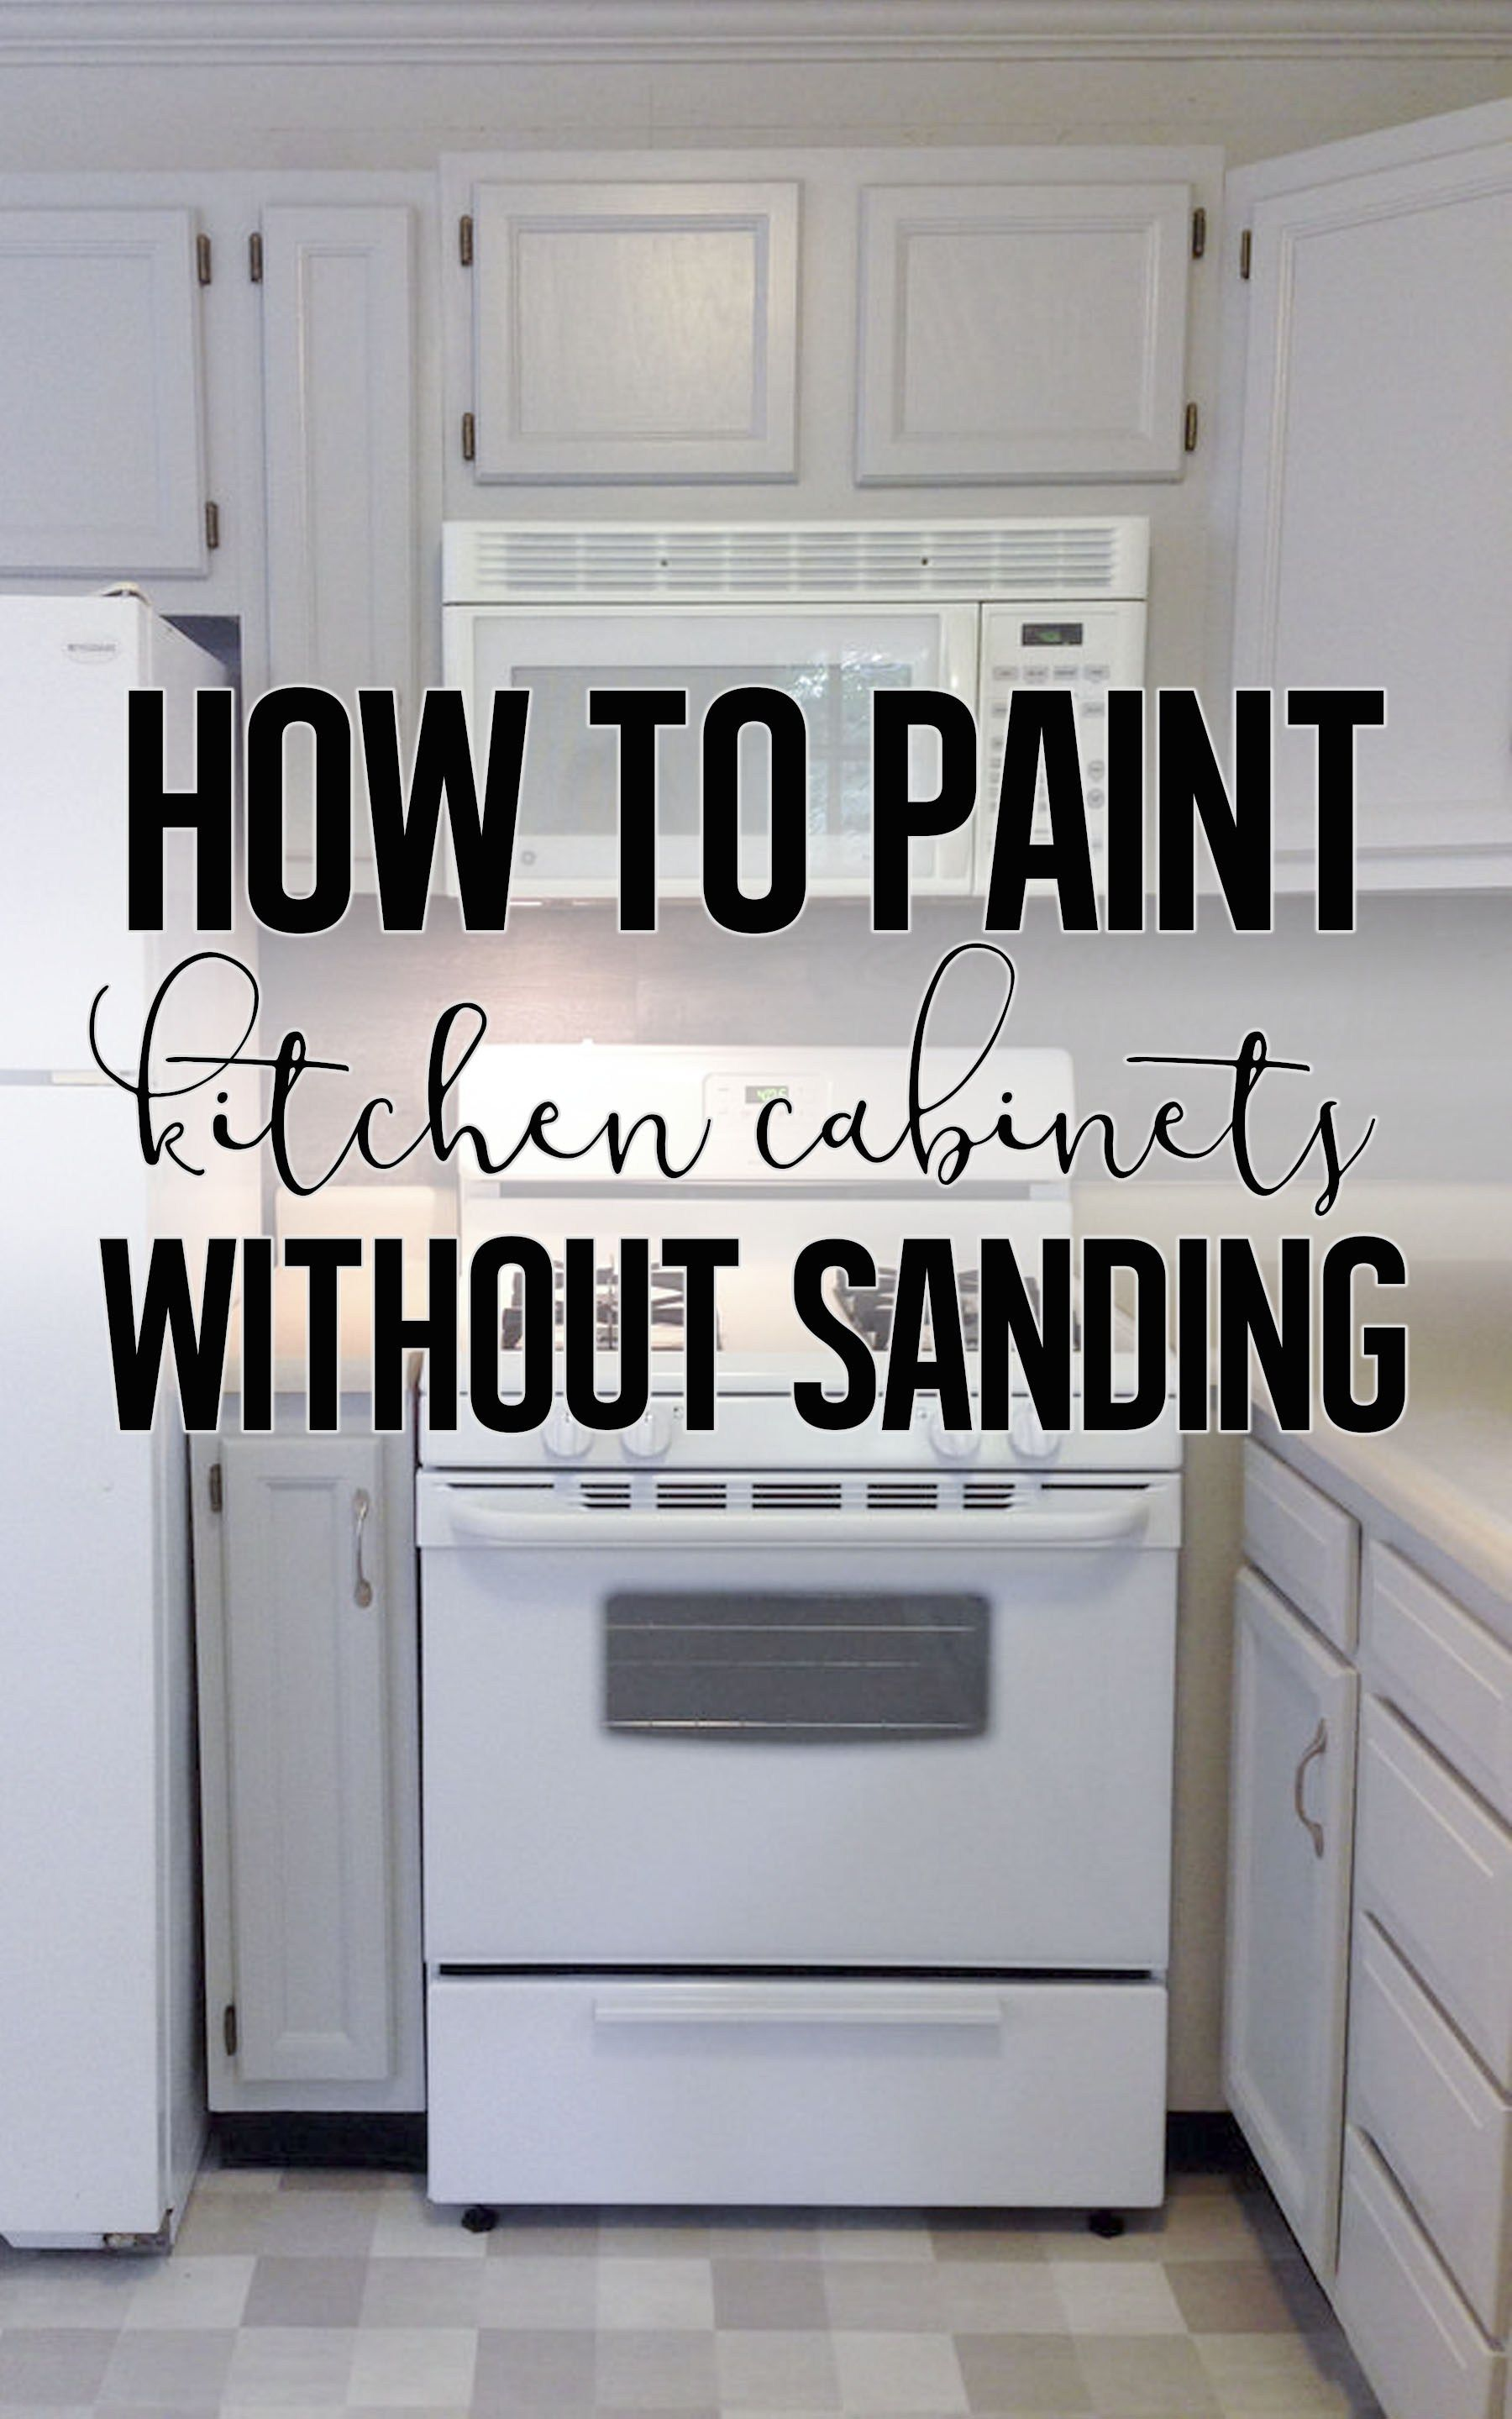 How To Paint Without Sanding Repainting kitchen